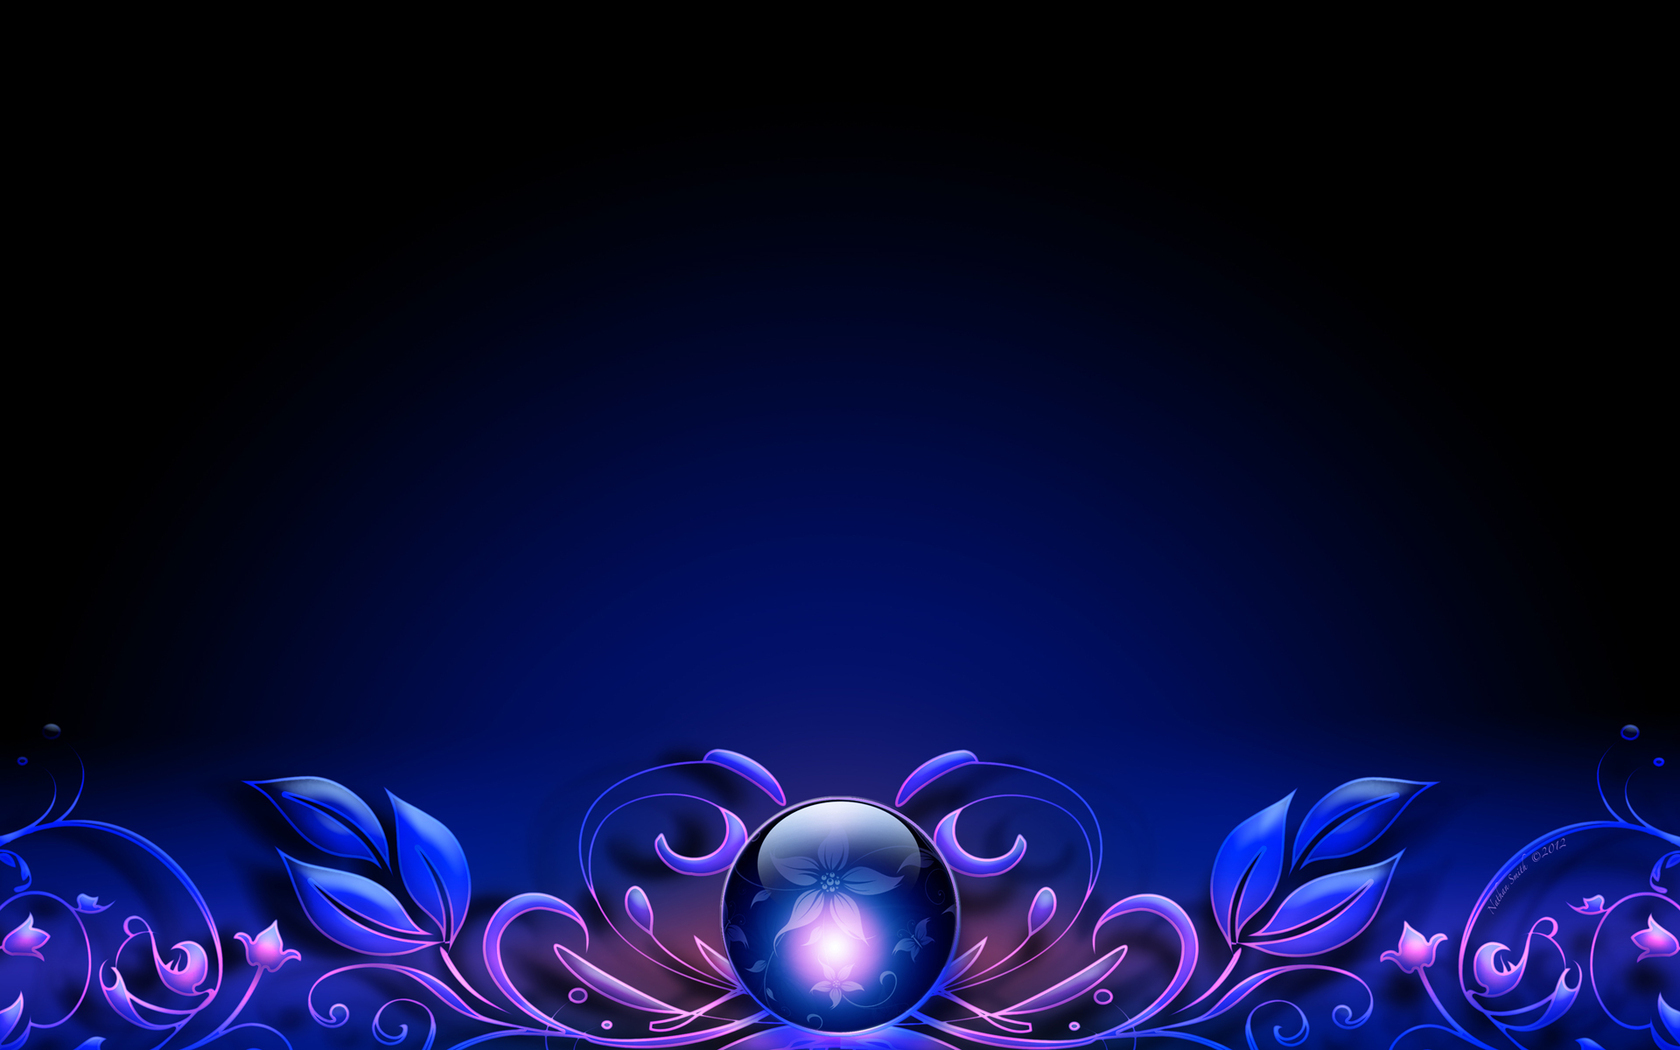 42027 download wallpaper Background screensavers and pictures for free